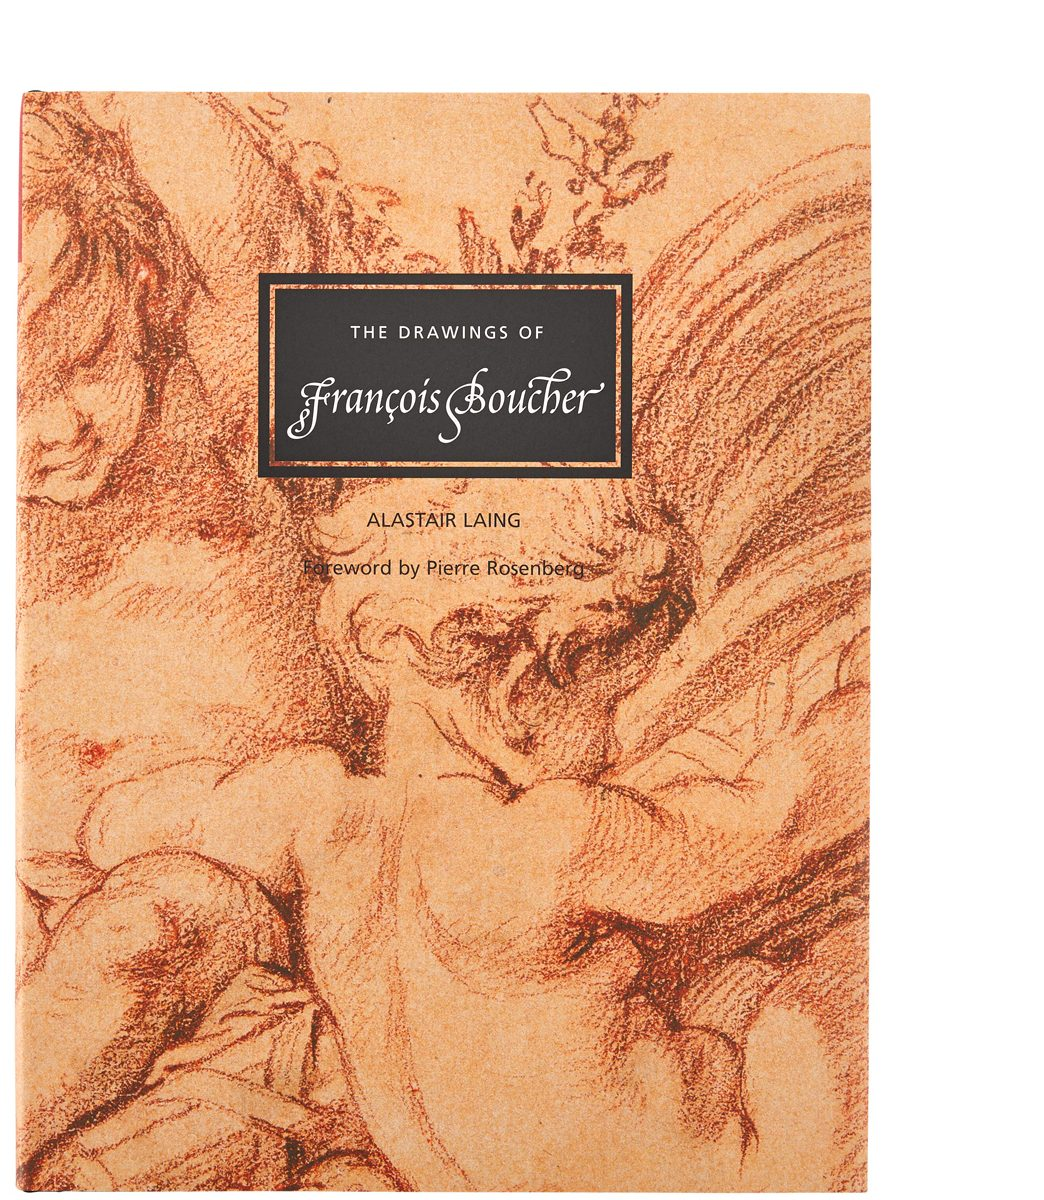 The Drawings of François Boucher